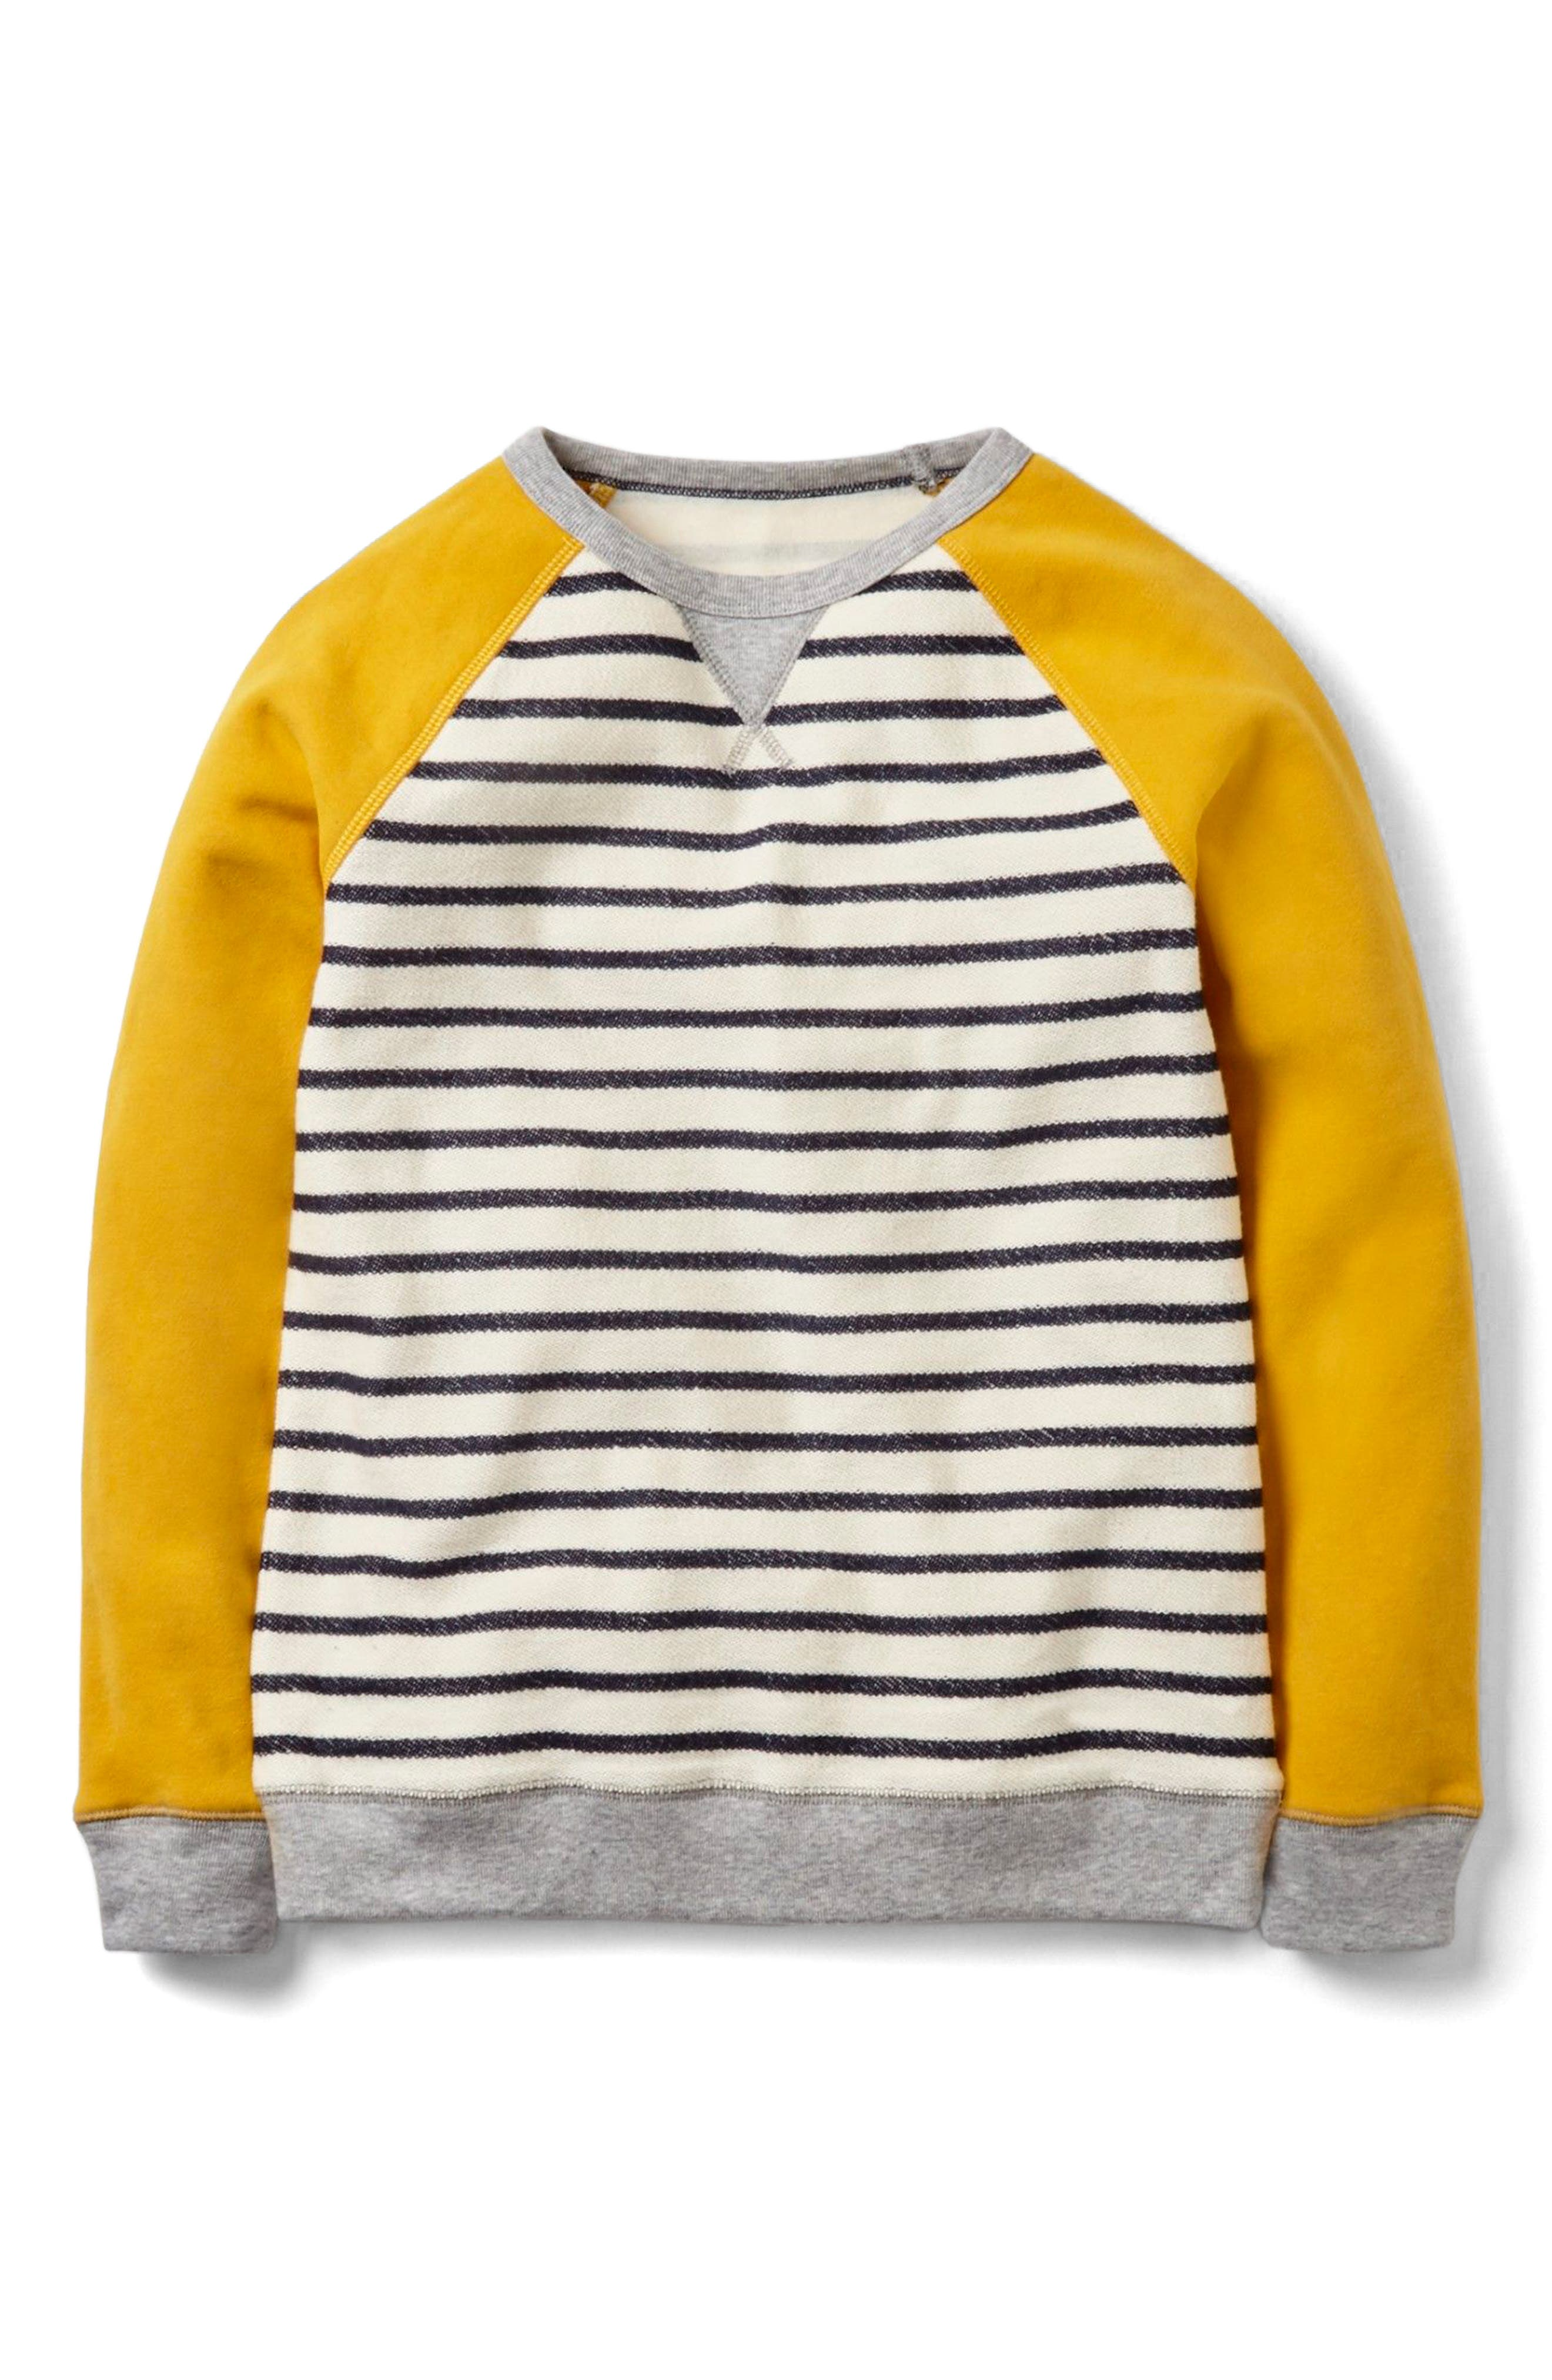 Alternate Image 1 Selected - Mini Boden Essential Sweatshirt (Toddler Boys, Little Boys & Big Boys)